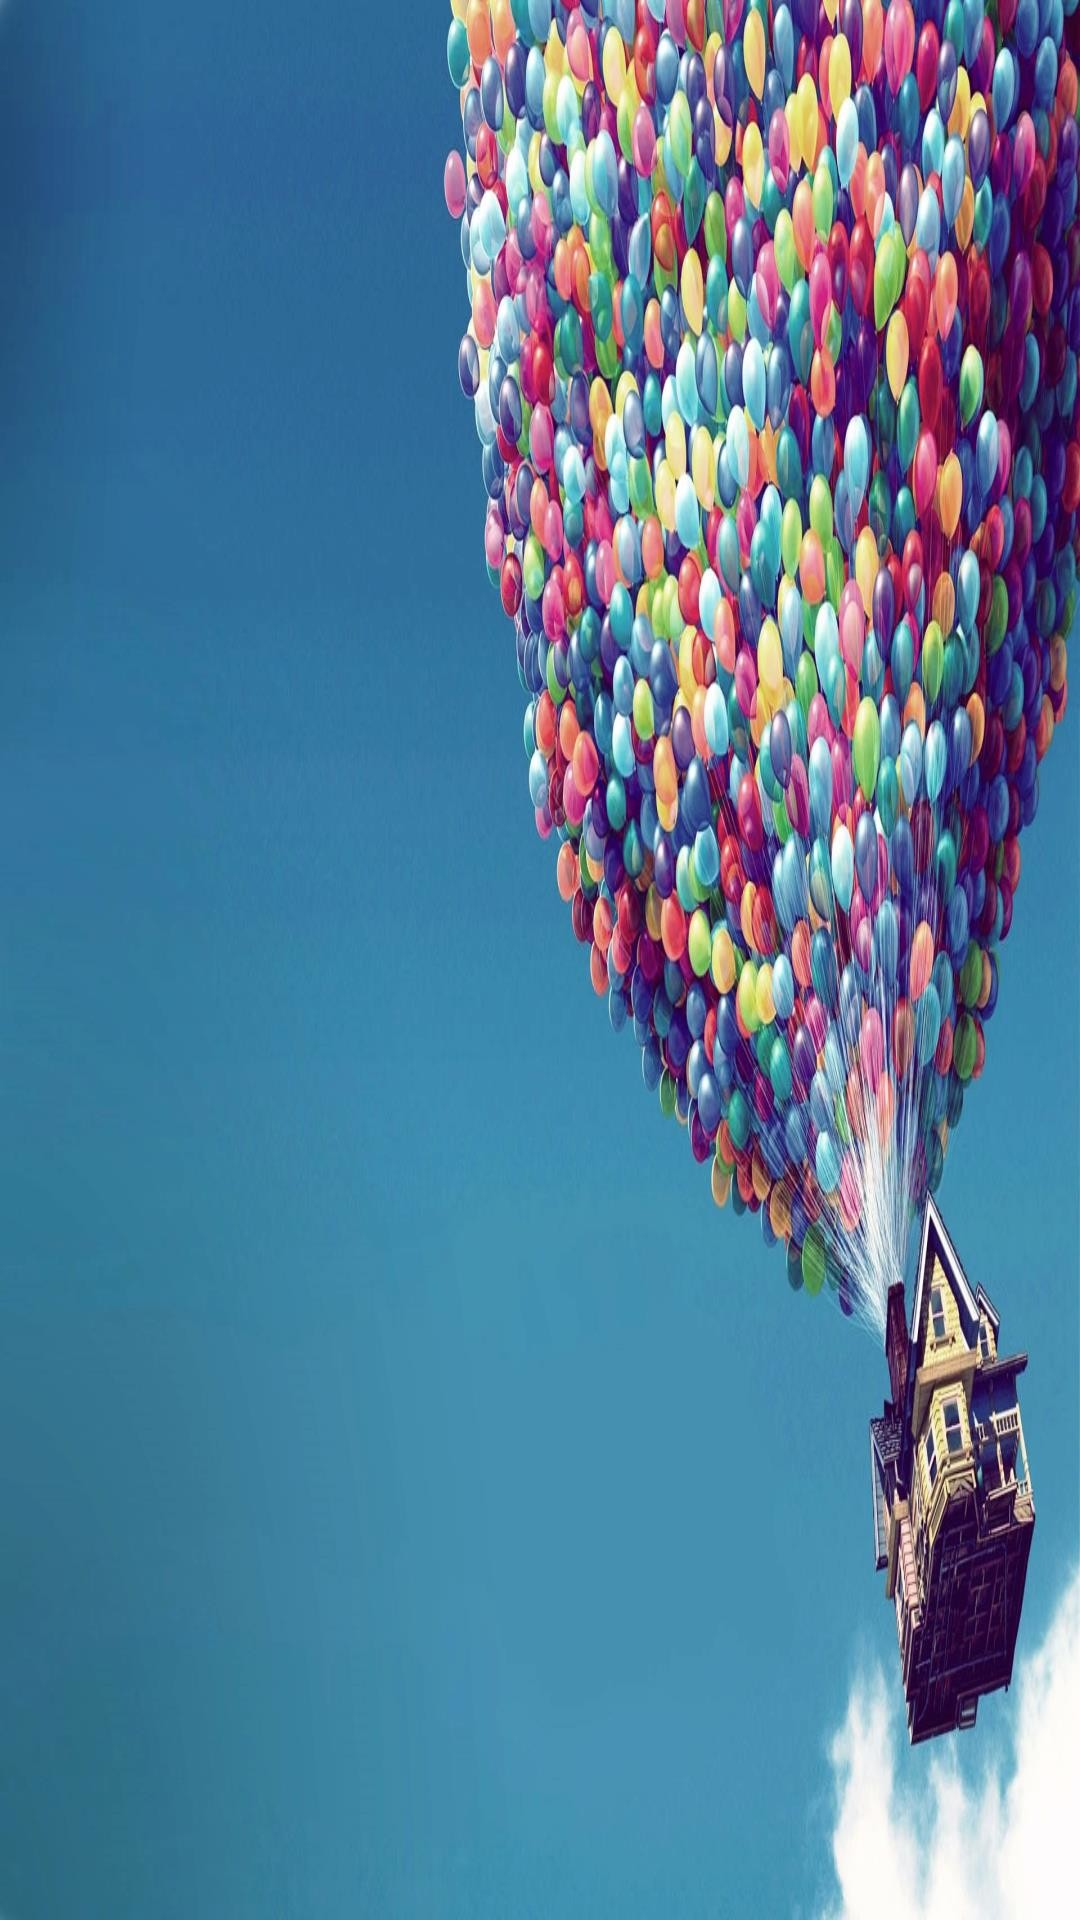 1080x1920 movie UP cartoon disney pixar full hd wallpaper balloons and the house in  the sky p